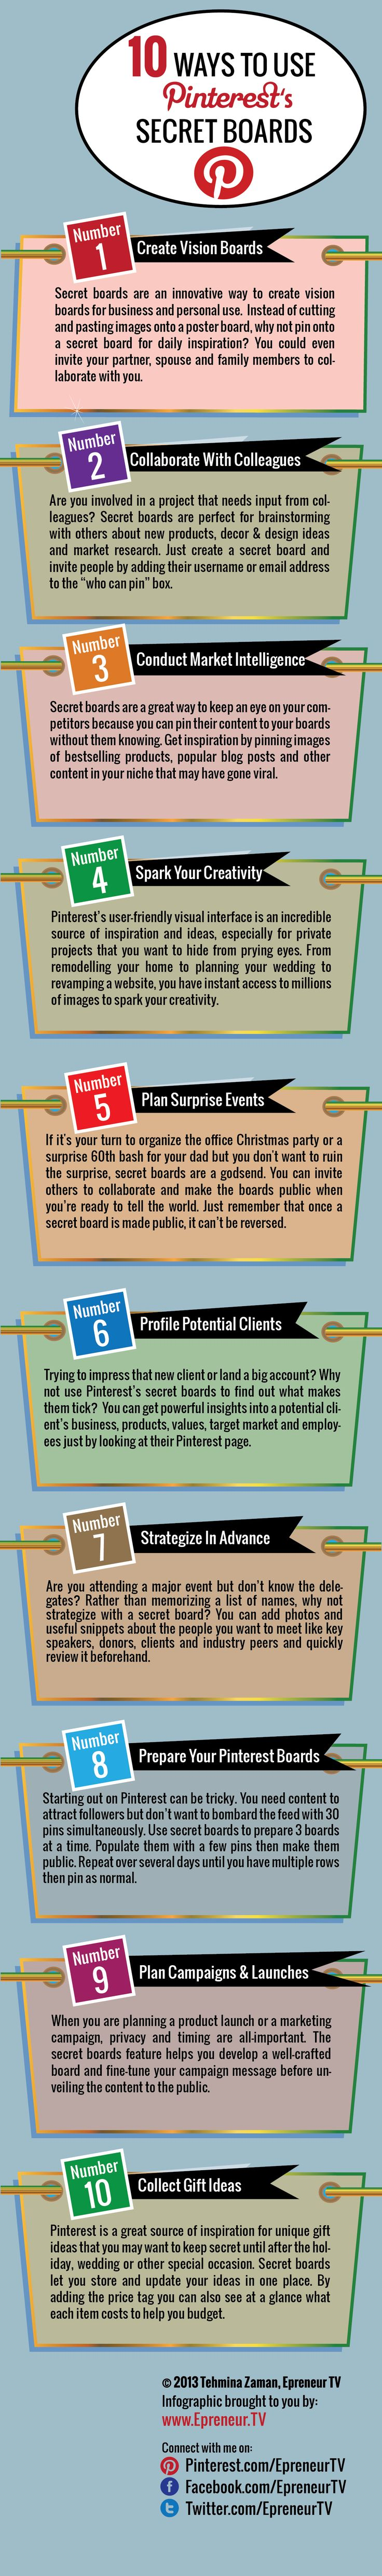 SOCIAL MEDIA STRATEGY FOR PINTEREST: 10 WAYS TO USE SECRET BOARDS